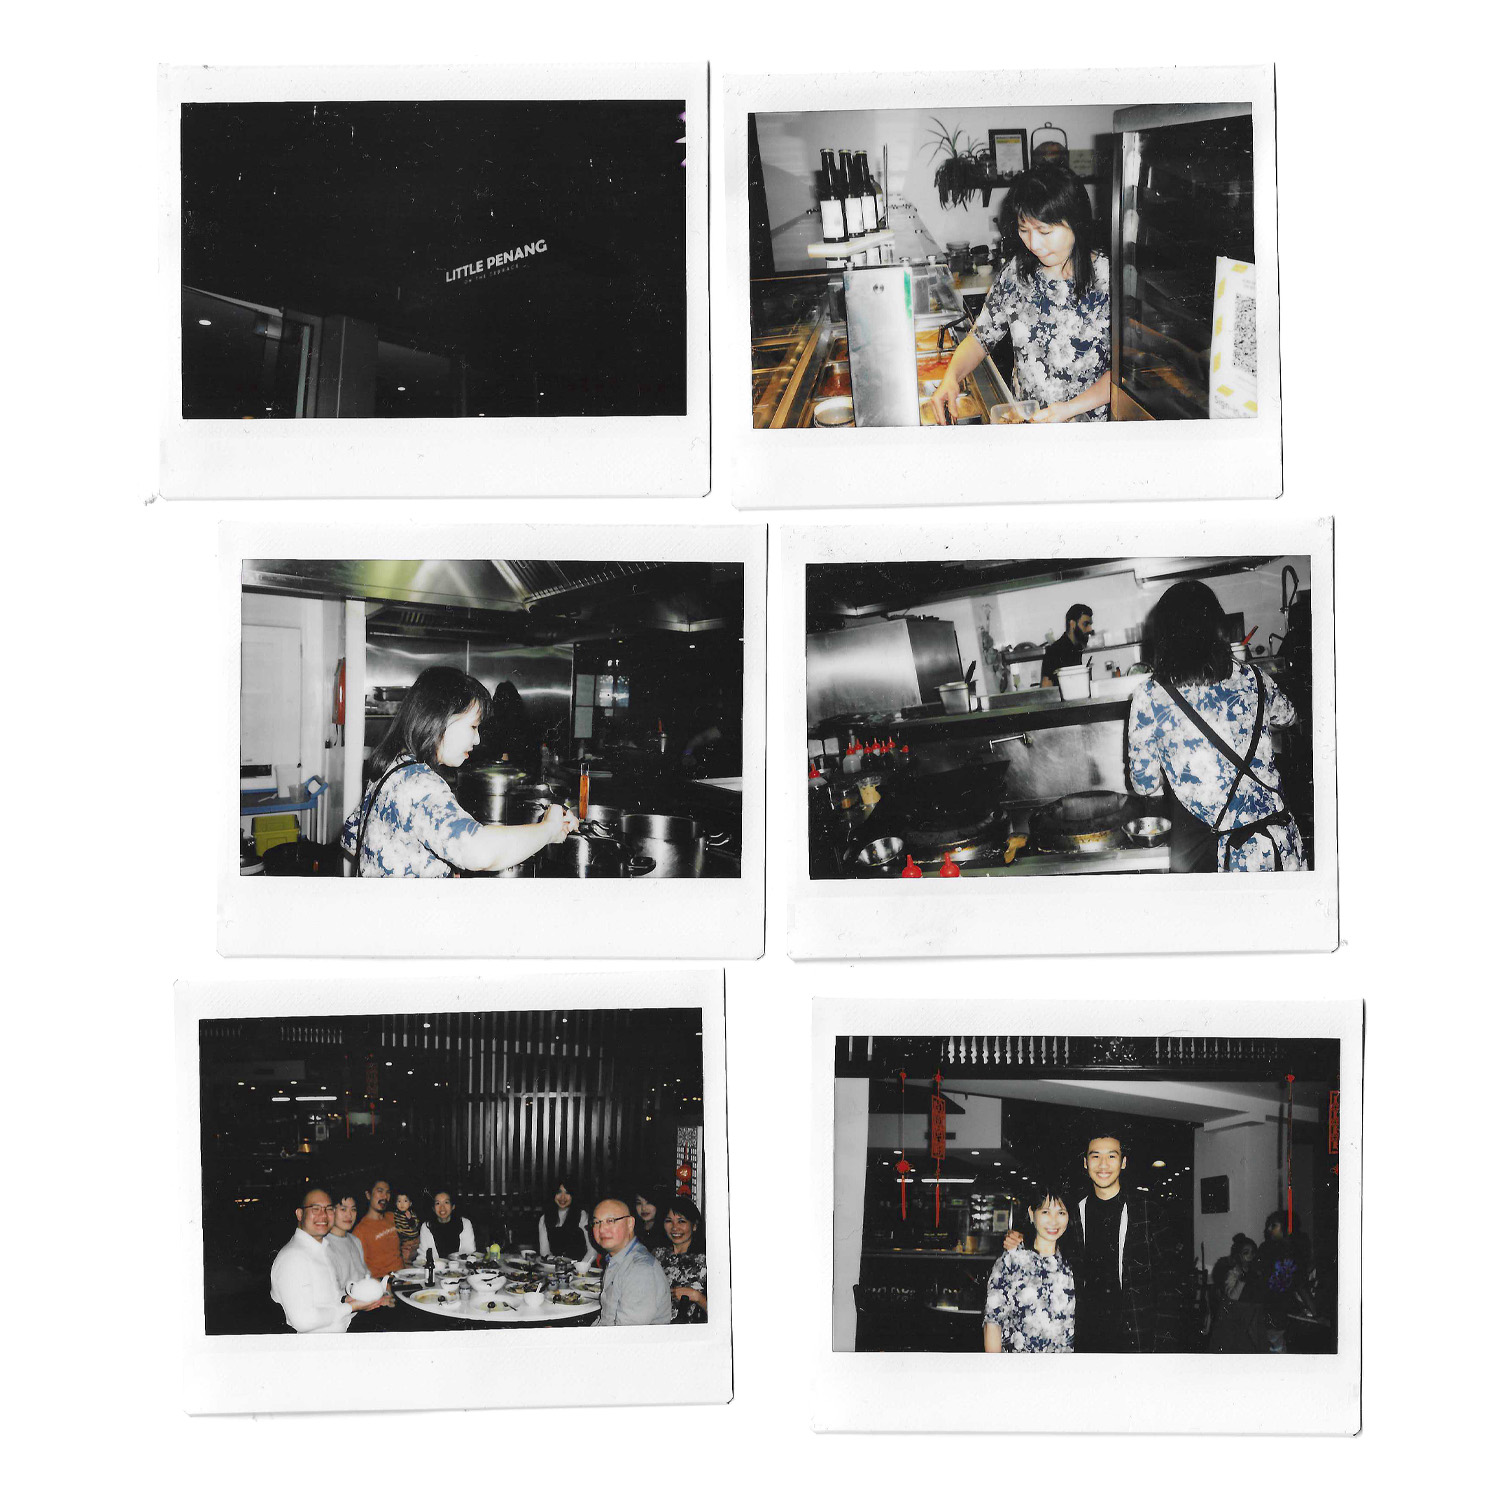 A selection of Polaroid photos showing a woman cooking in her restaurant kitchen and eating food with her family